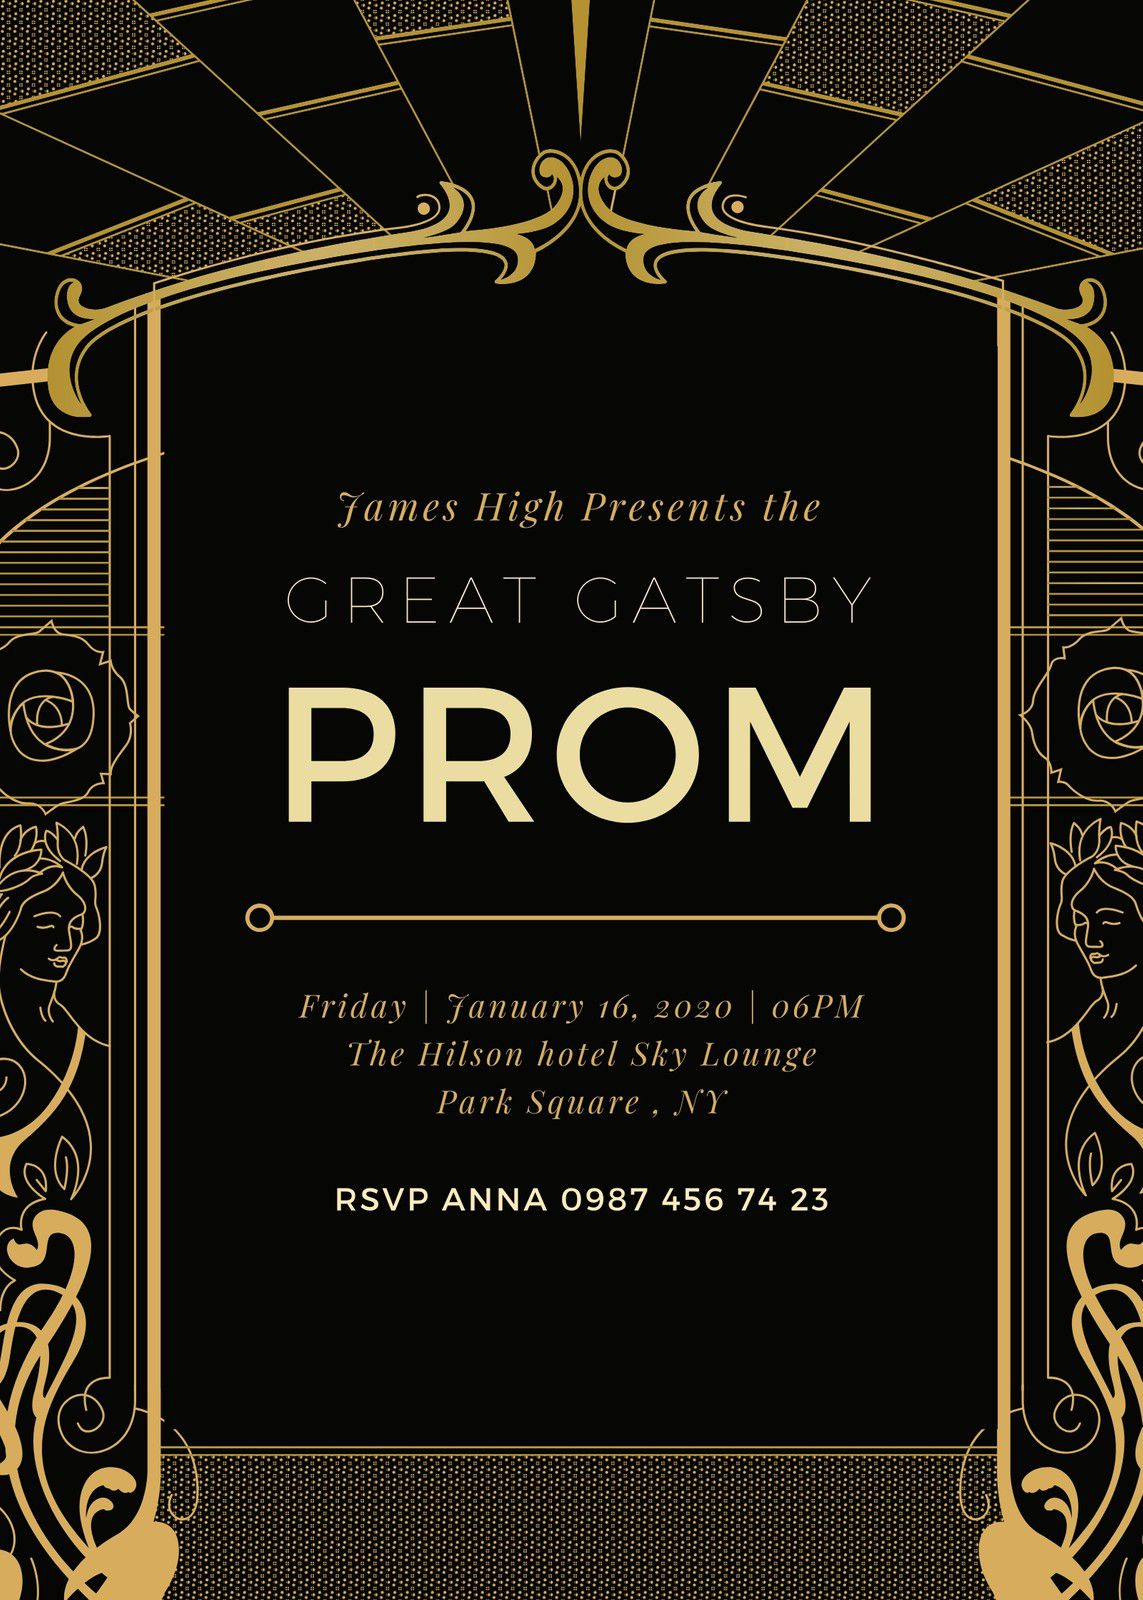 005 Fascinating Great Gatsby Invitation Template Example  Templates Free Download BlankFull